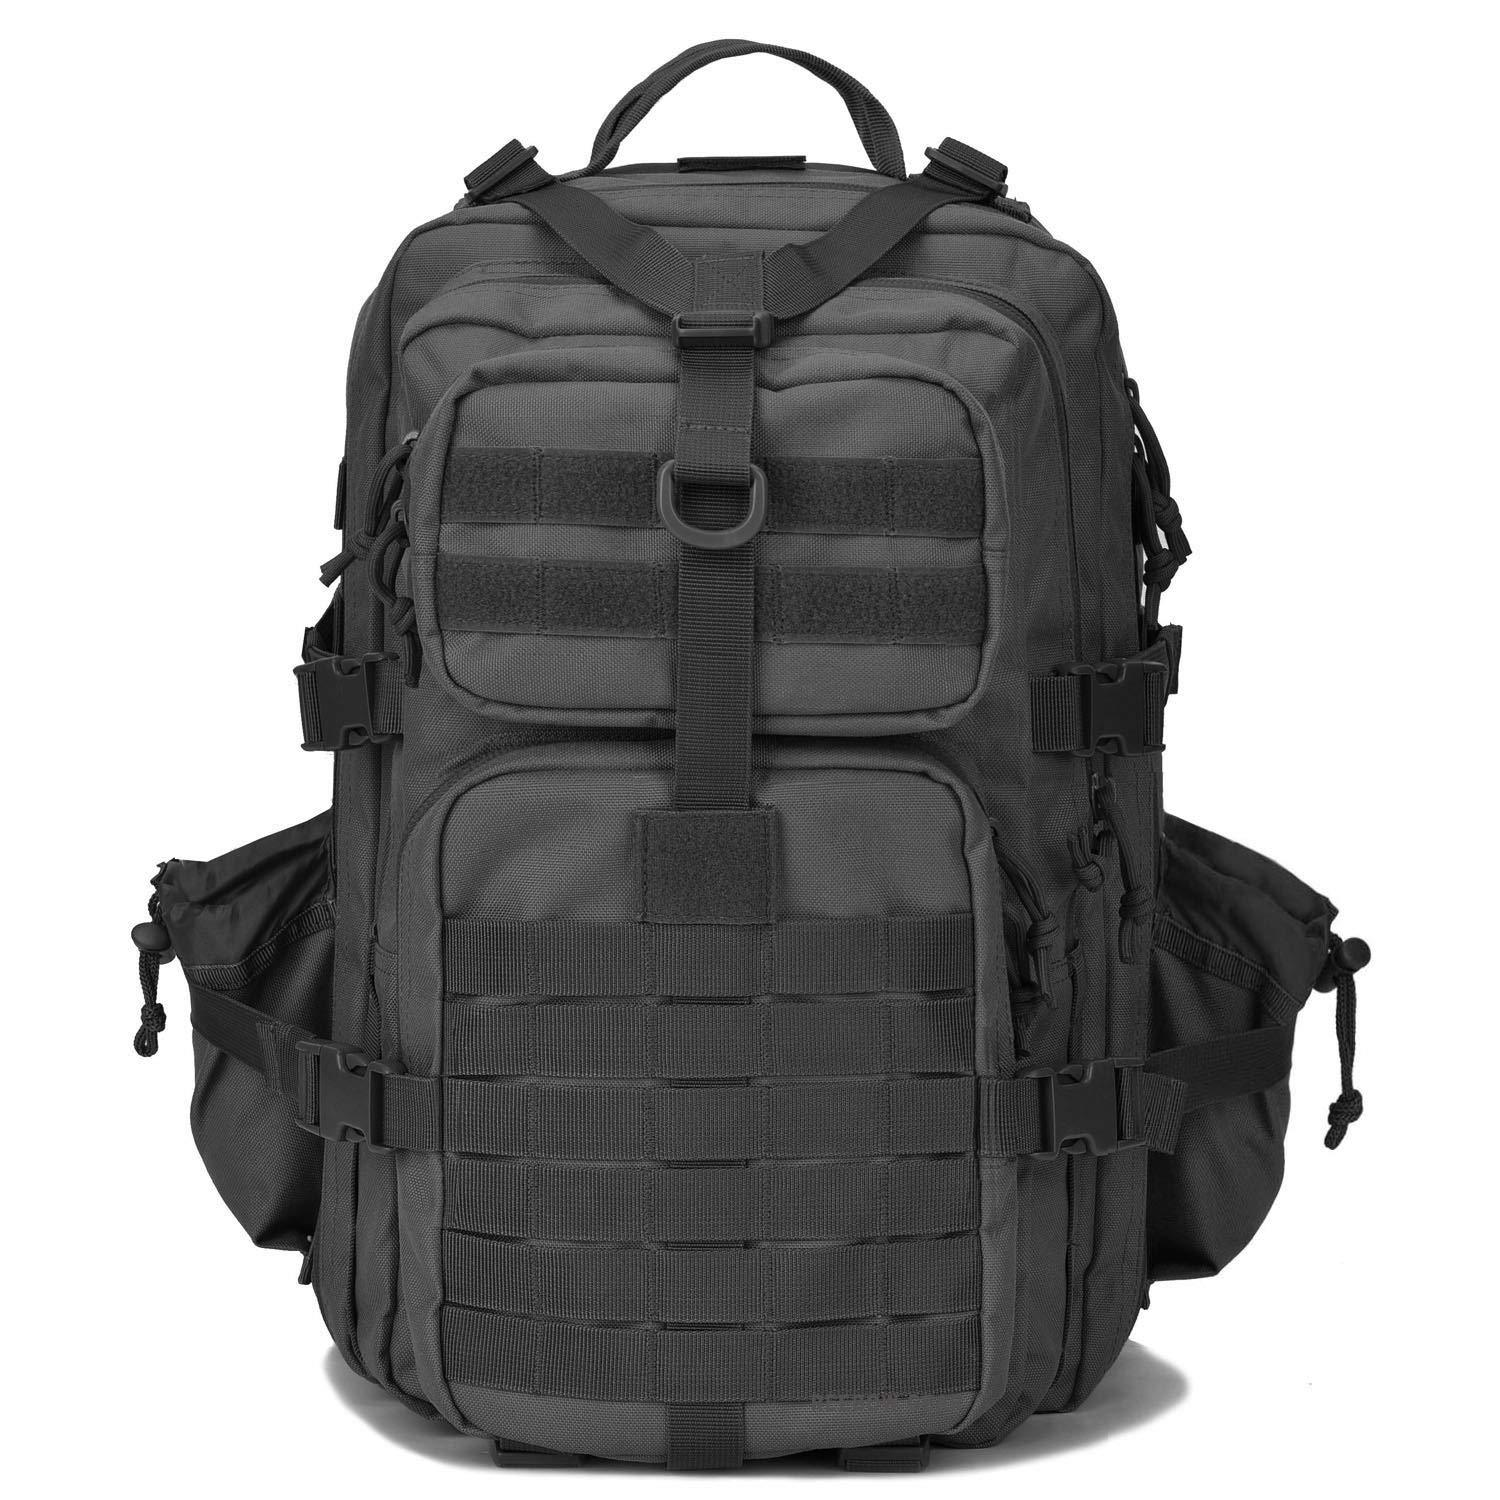 BOW-TAC tactical backpacks - Black 34L molle bug out backpack - Front view without flag